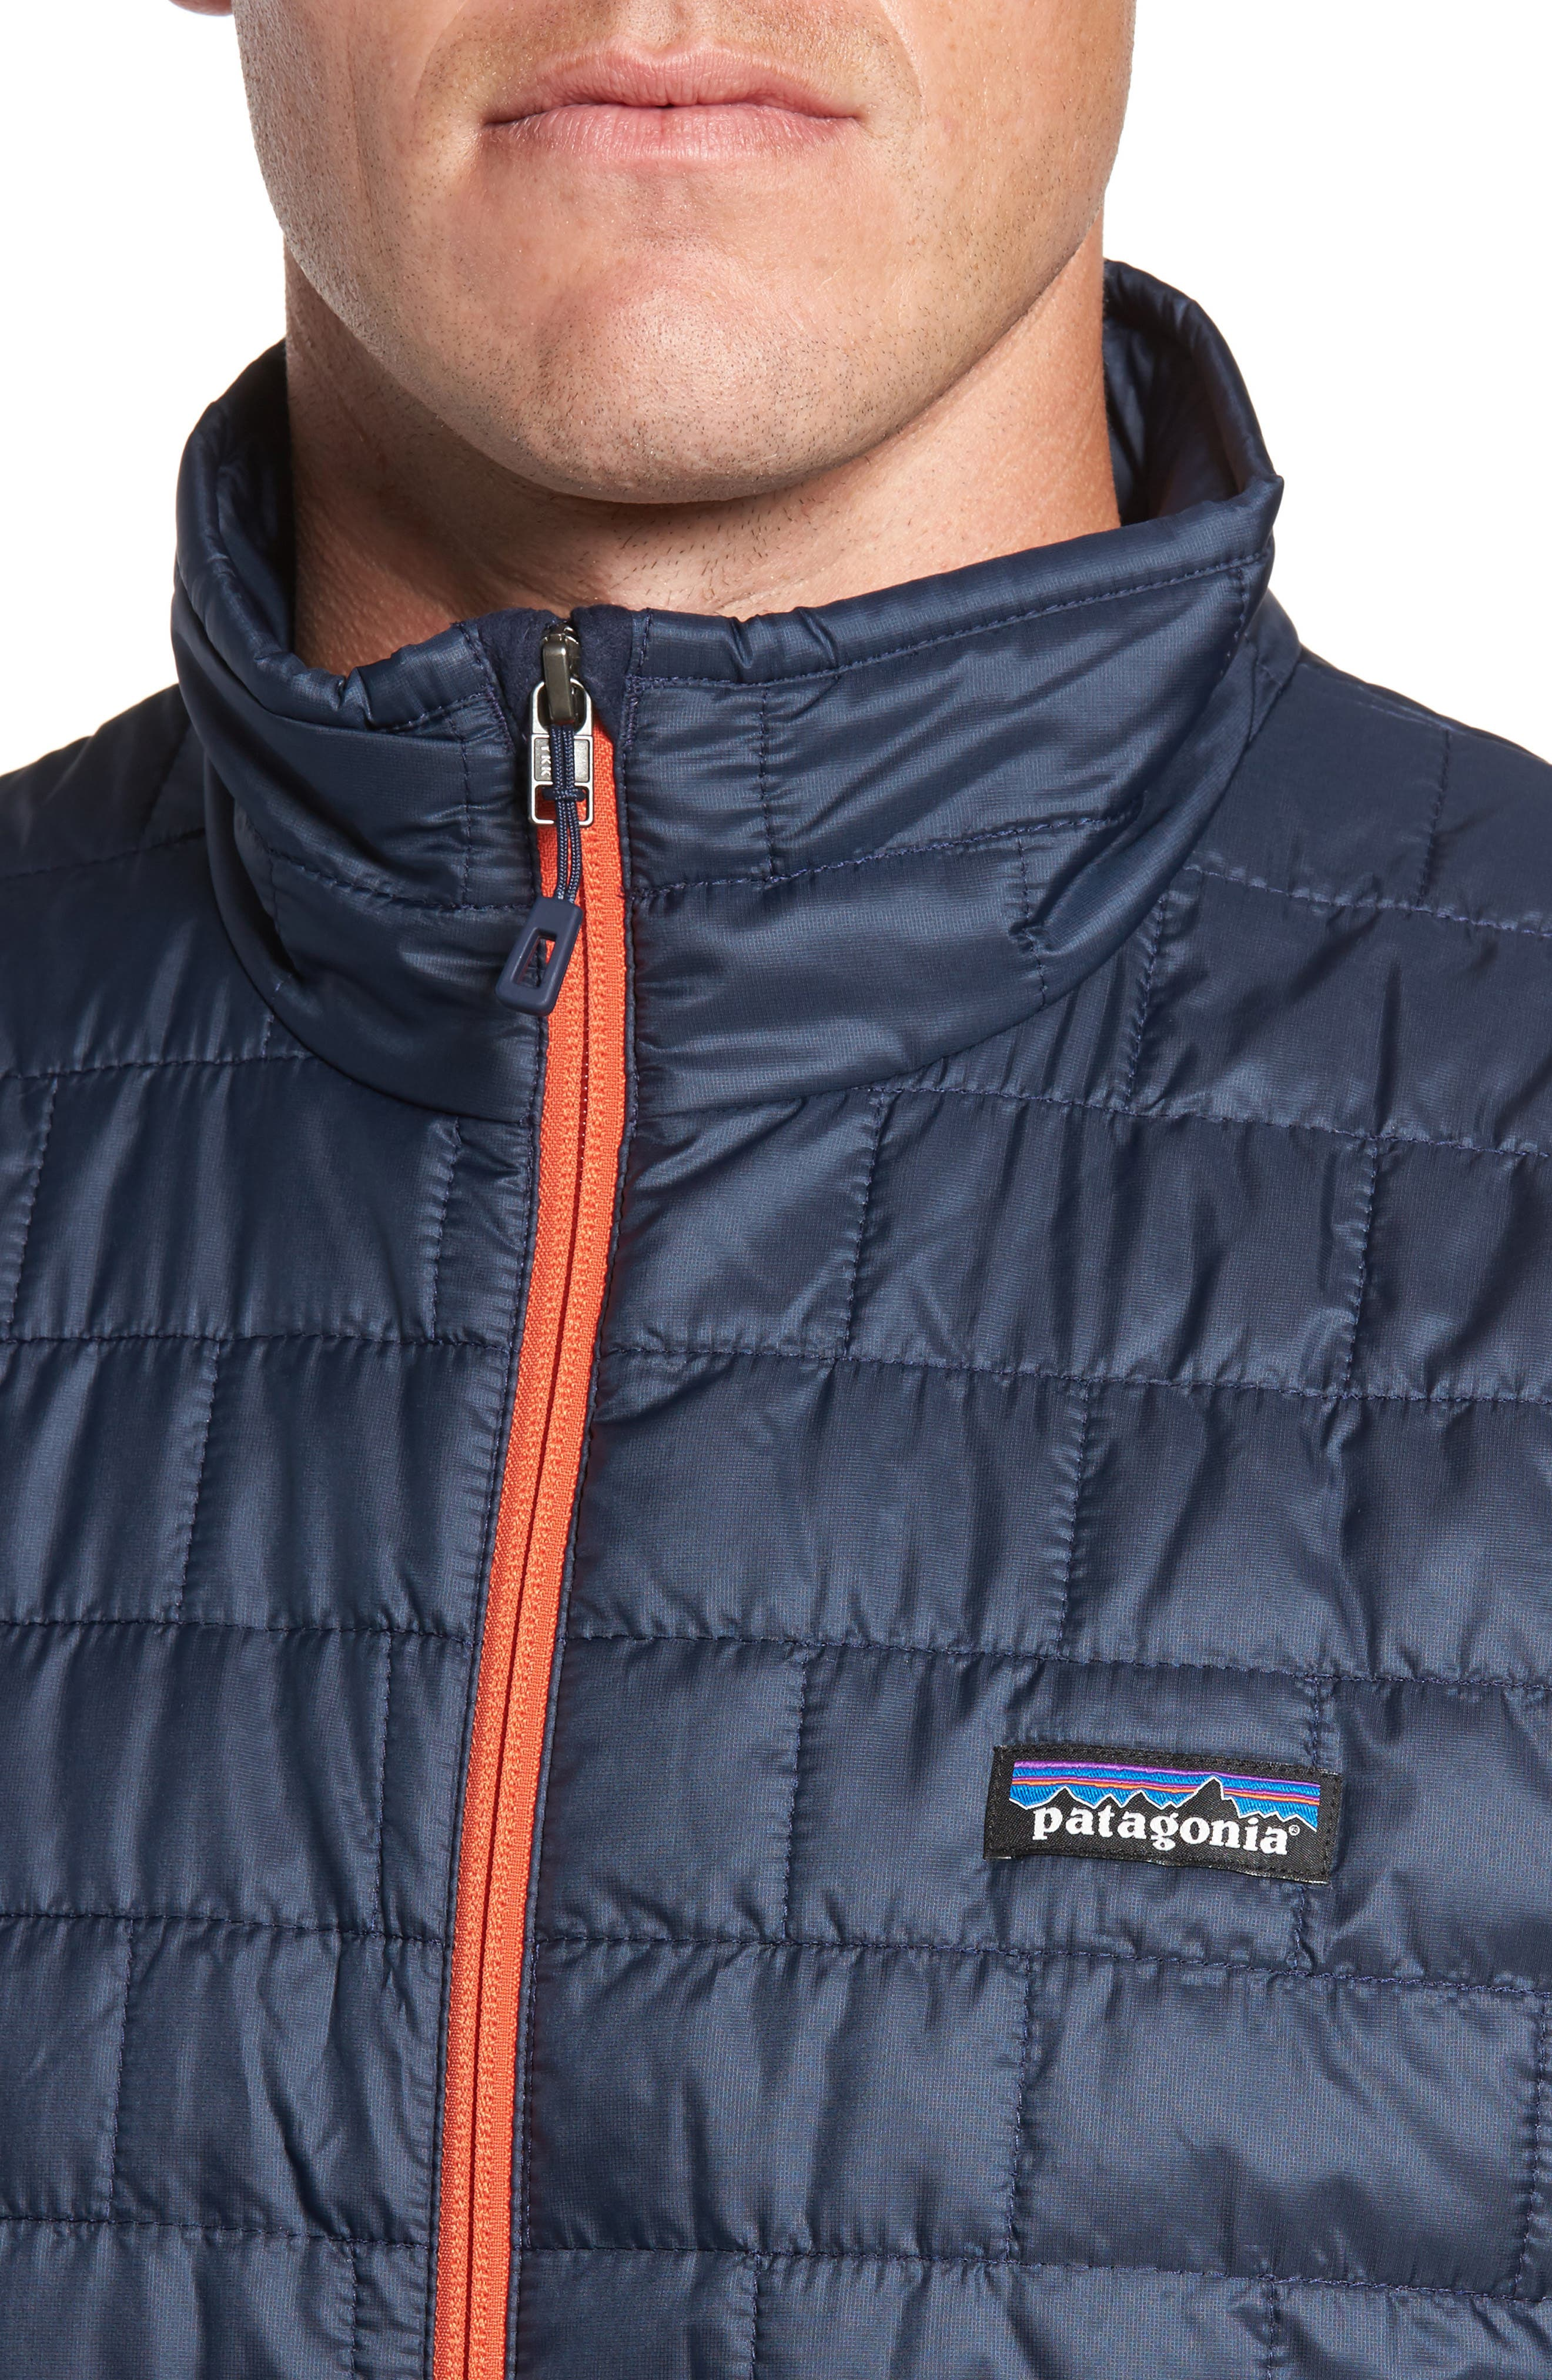 Nano Puff<sup>®</sup> Vest,                             Alternate thumbnail 4, color,                             Navy Blue W/ Paintbrush Red